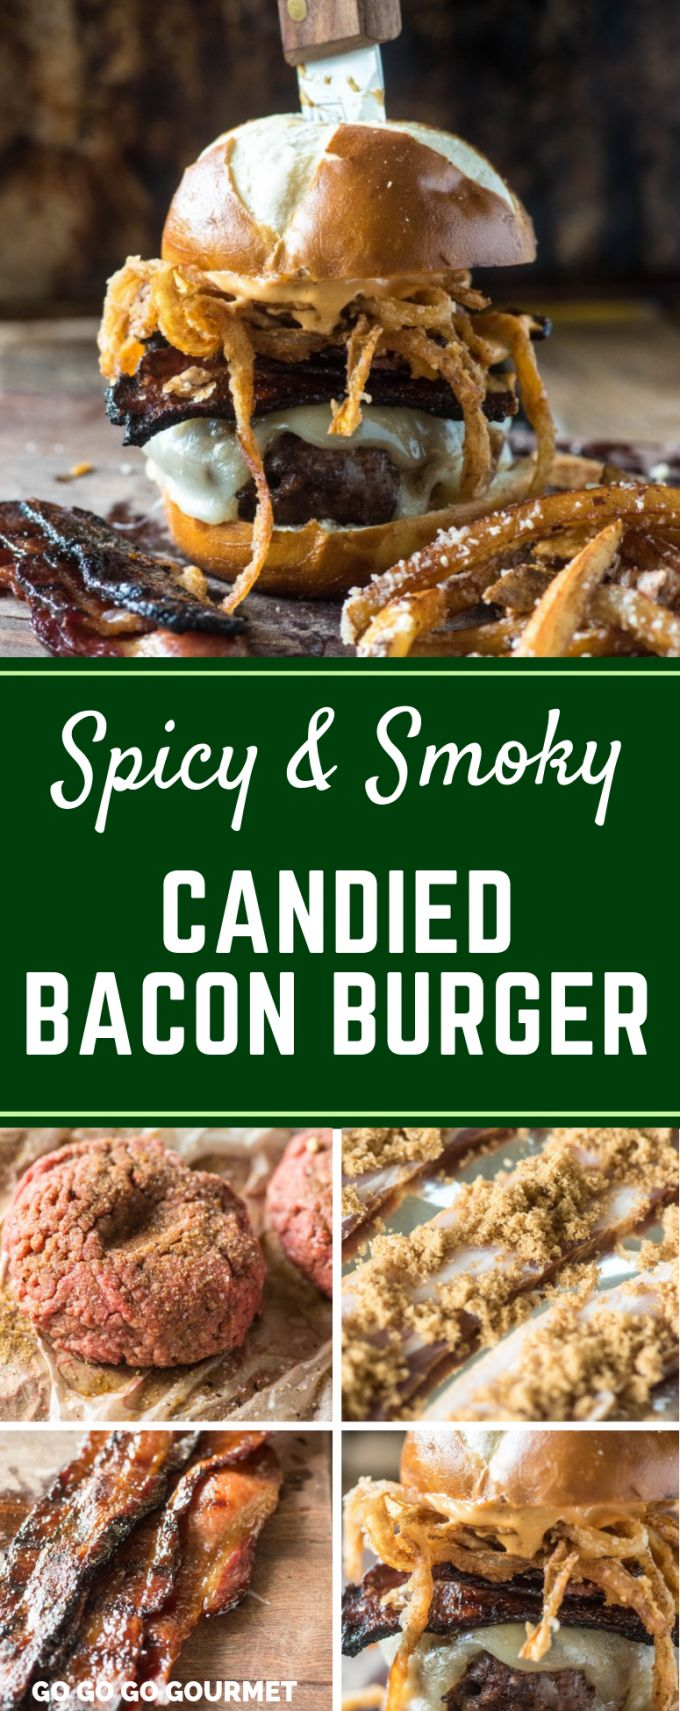 This Spicy and Smoky Candied Bacon Burger is one of the best cheeseburger recipes! With juicy burger patties, melty cheese and crispy onion straws, this is a burger that can't be beat! #gogogogourmet #spicysmokycandiedbaconburger #baconburger #candiedbacon via @gogogogourmet